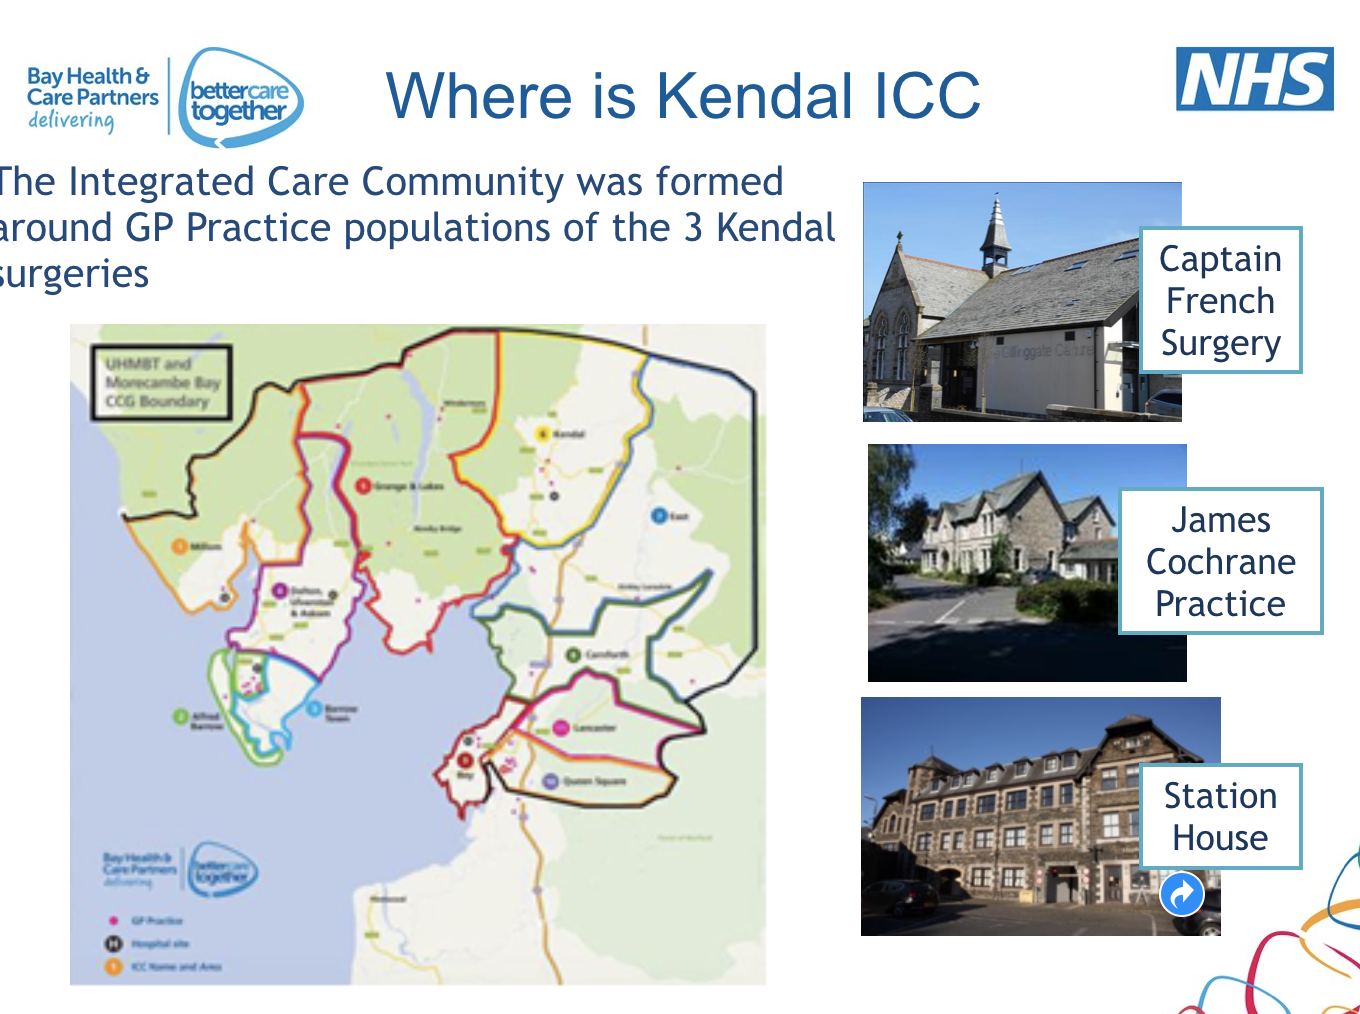 Kendal Integrated Care Community featured image